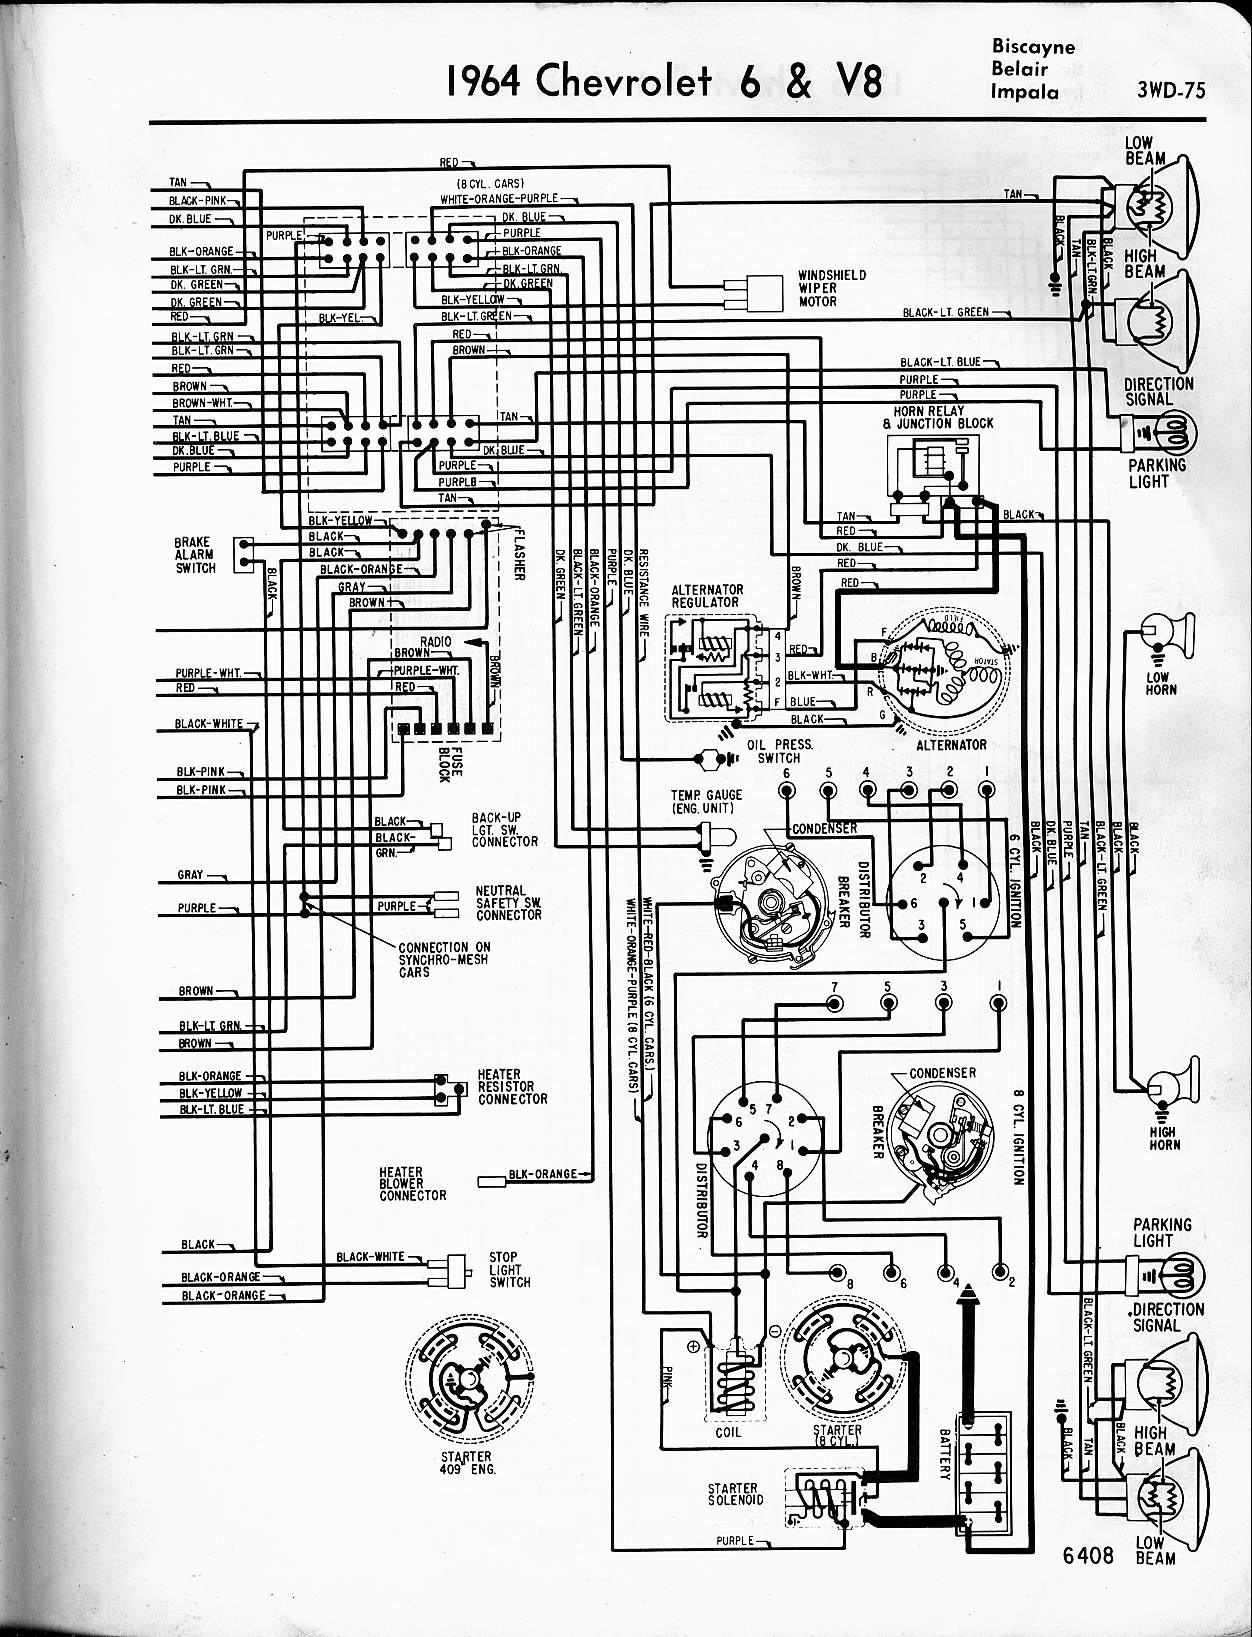 Gm Starter Wiring V8 Library 1987 Monte Carlo Ignition Diagram 1964 6 Biscayne Belair Impala